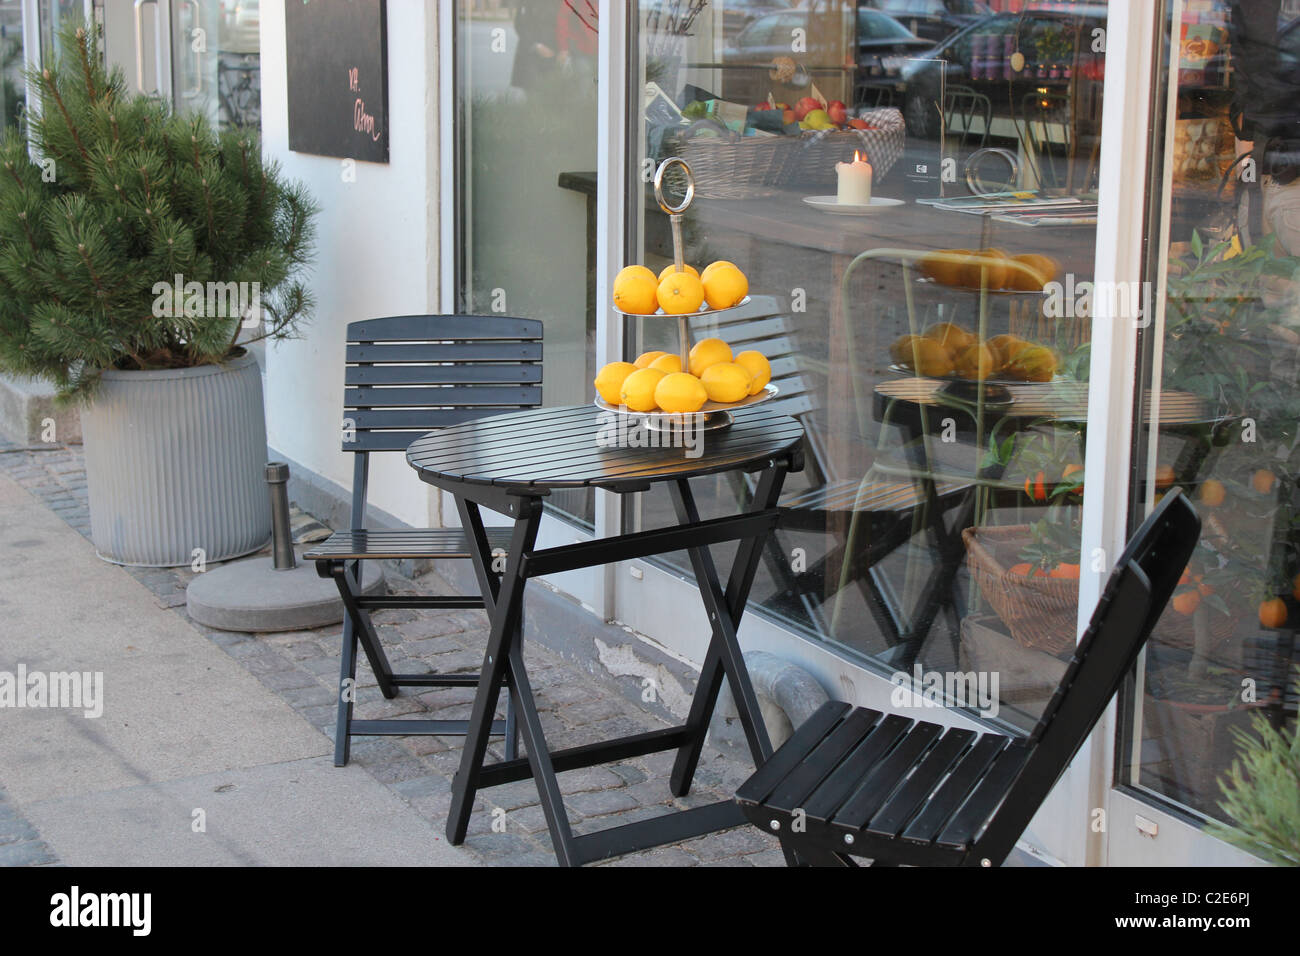 A café table in posh Østerbro district in Copenhagen, Denmark - Stock Image